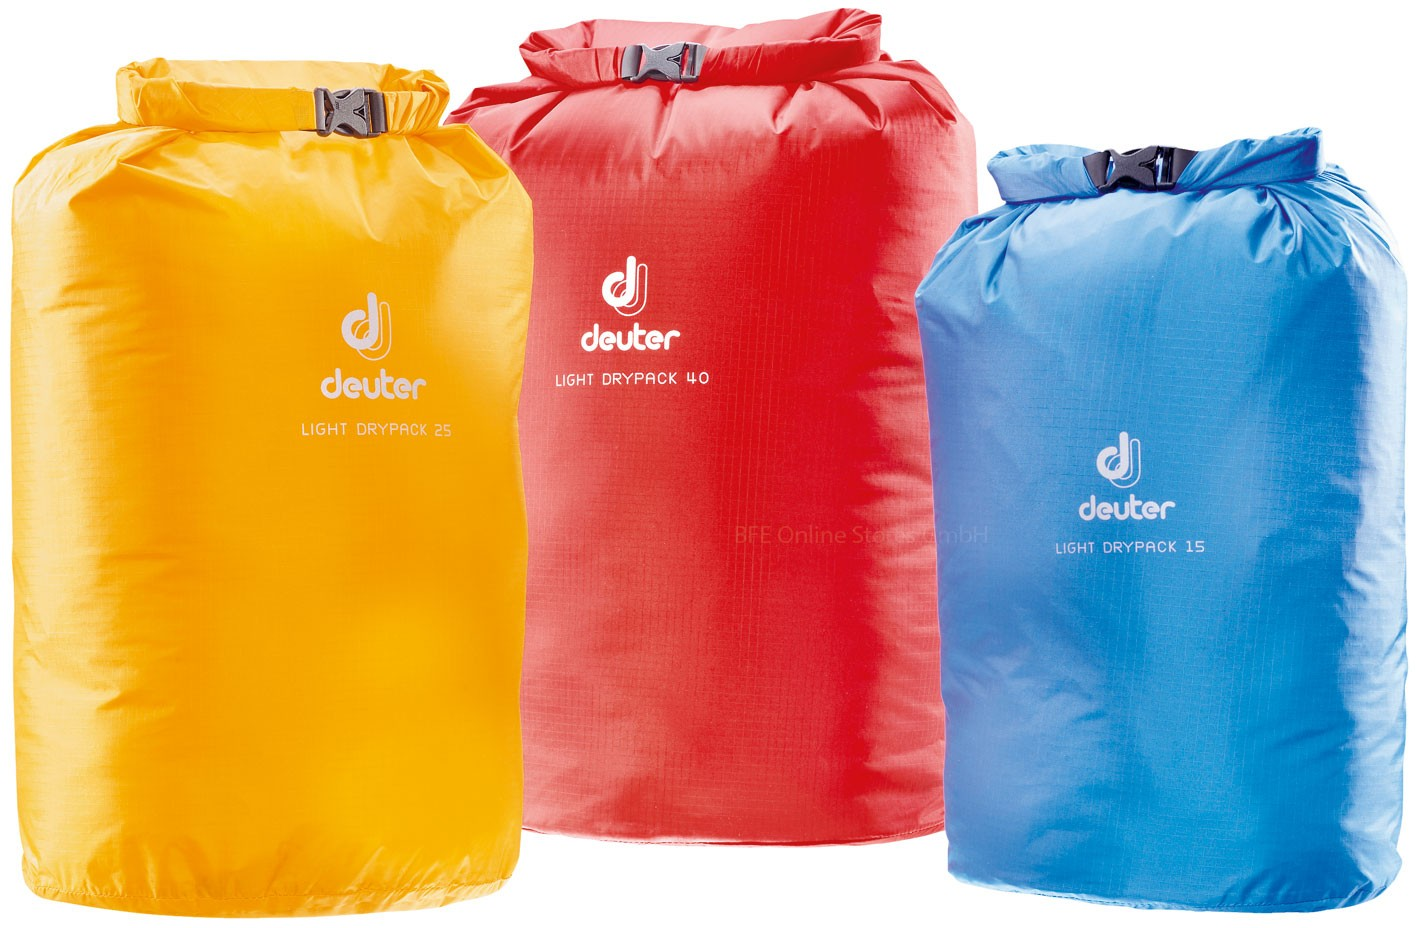 Deuter Light Drypack 15